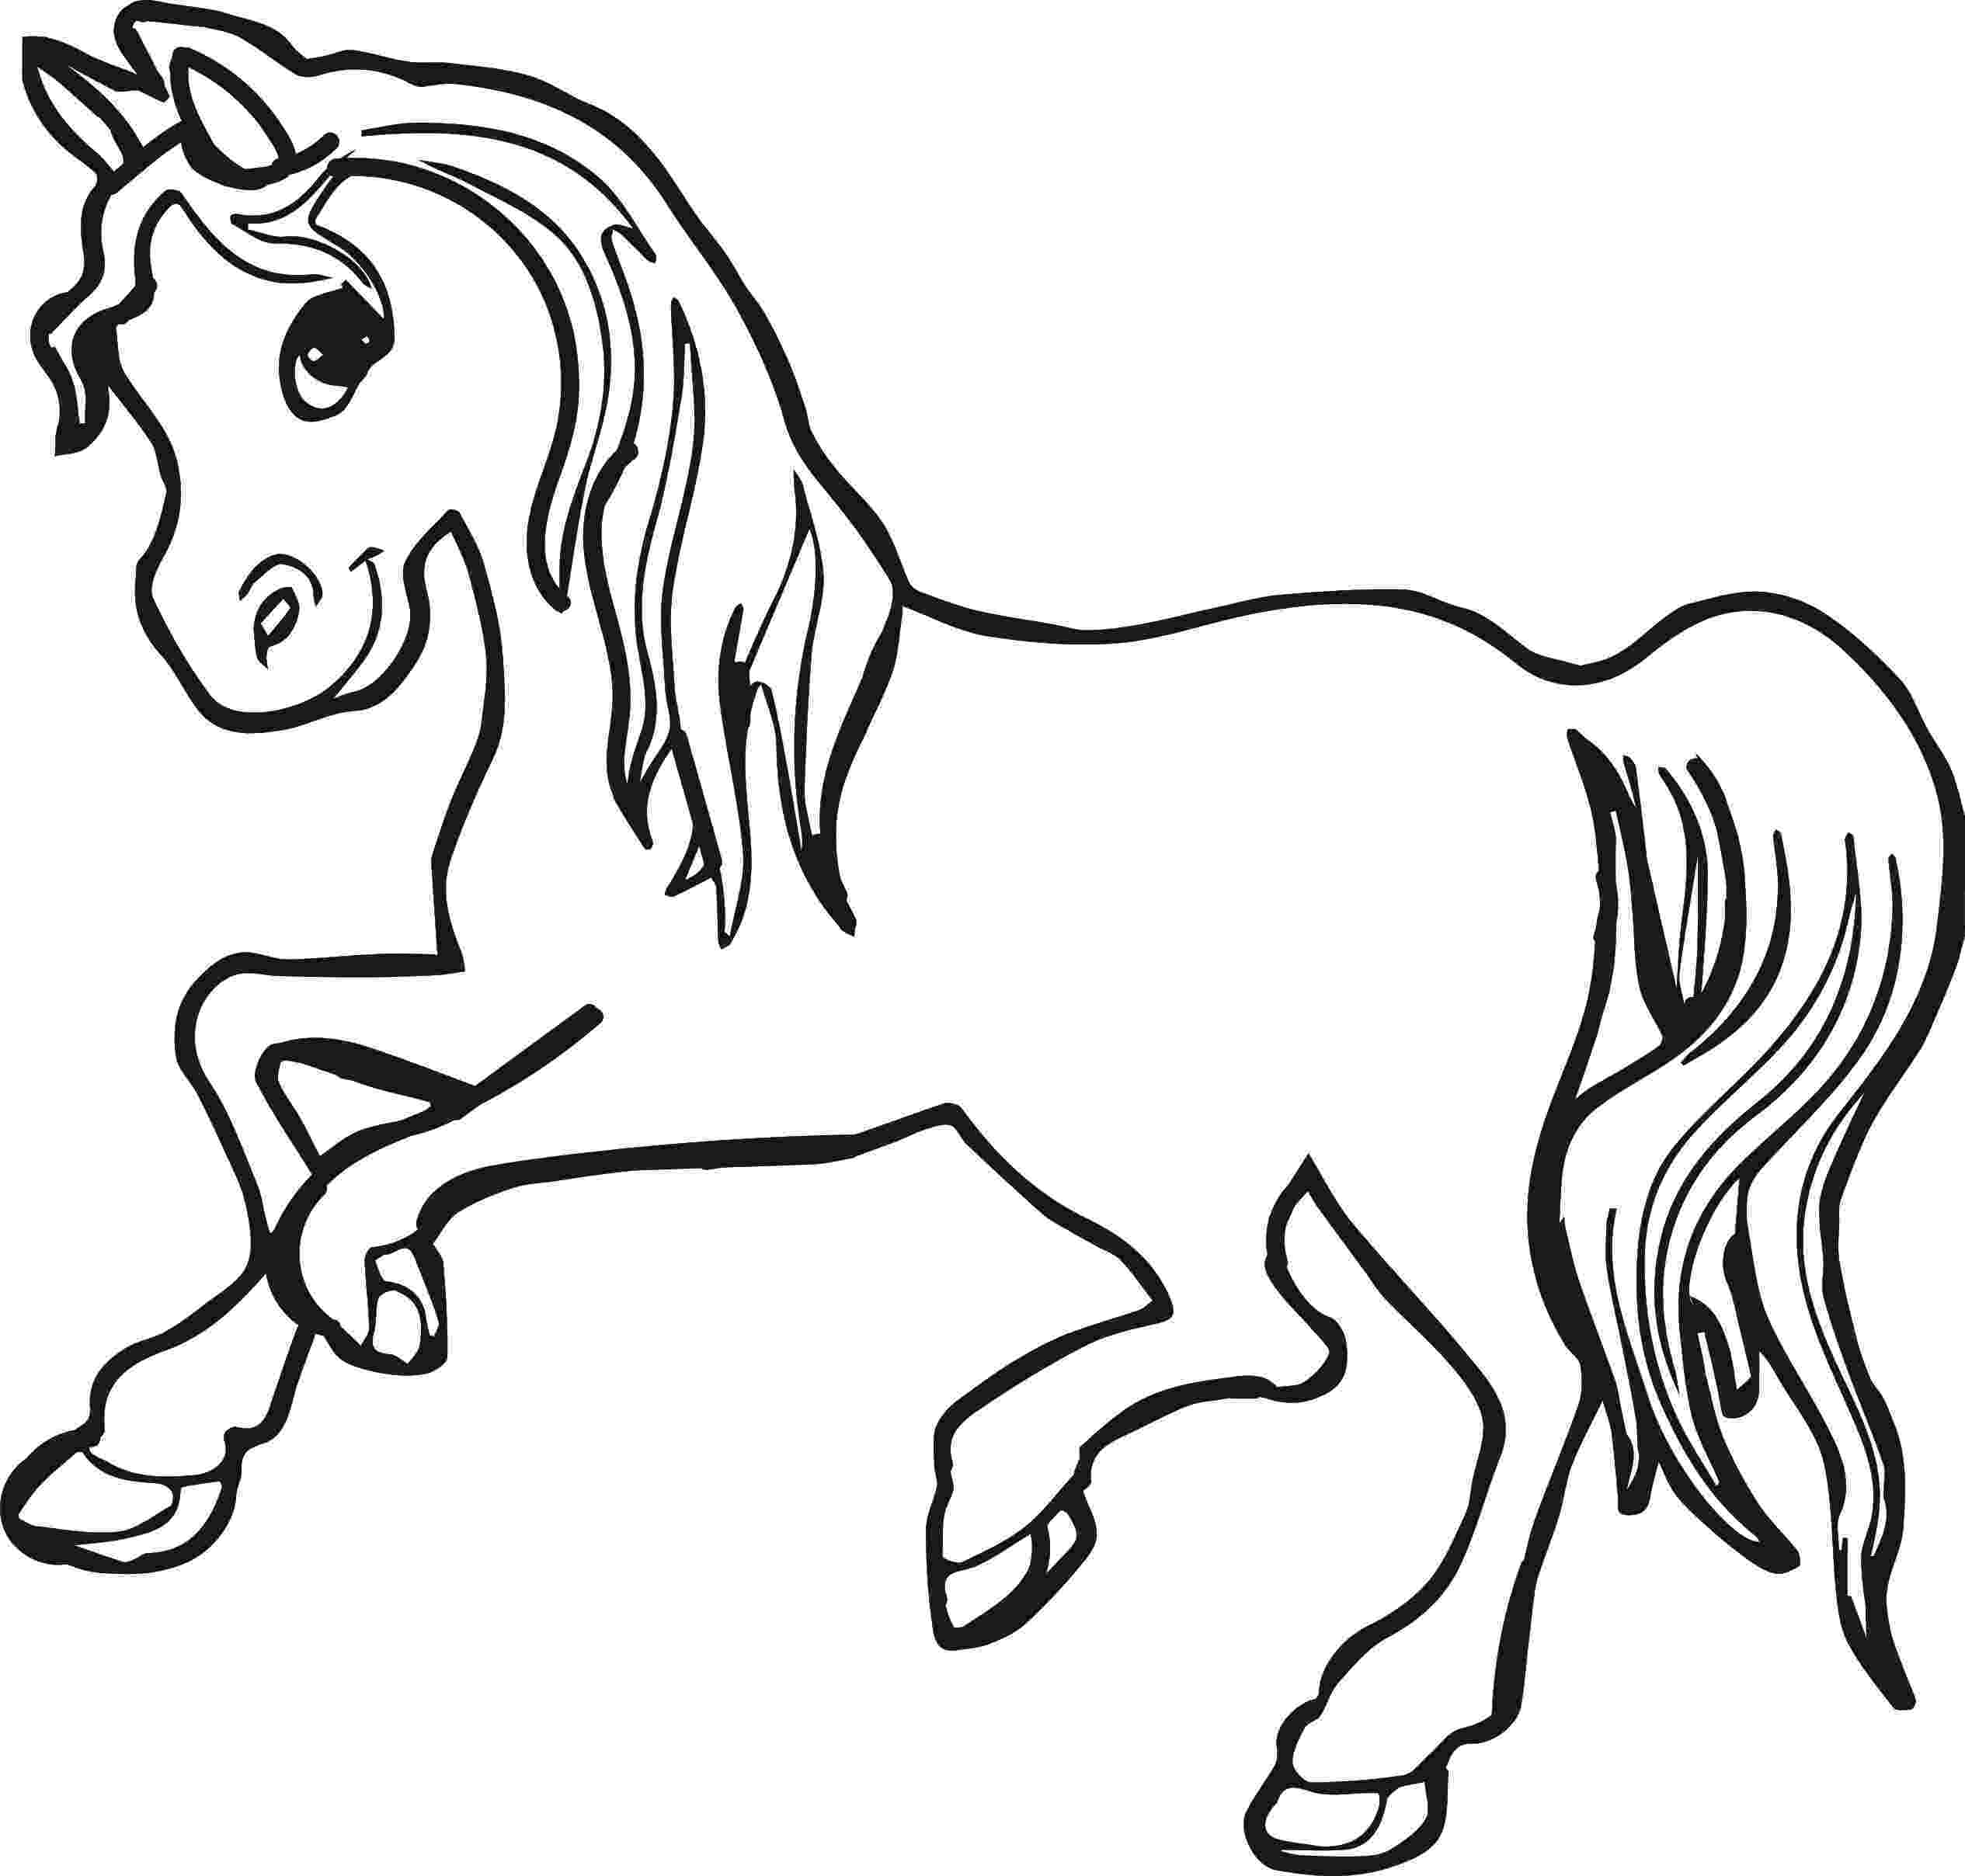 colouring horses great horse coloring pages online new coloring pages horses colouring